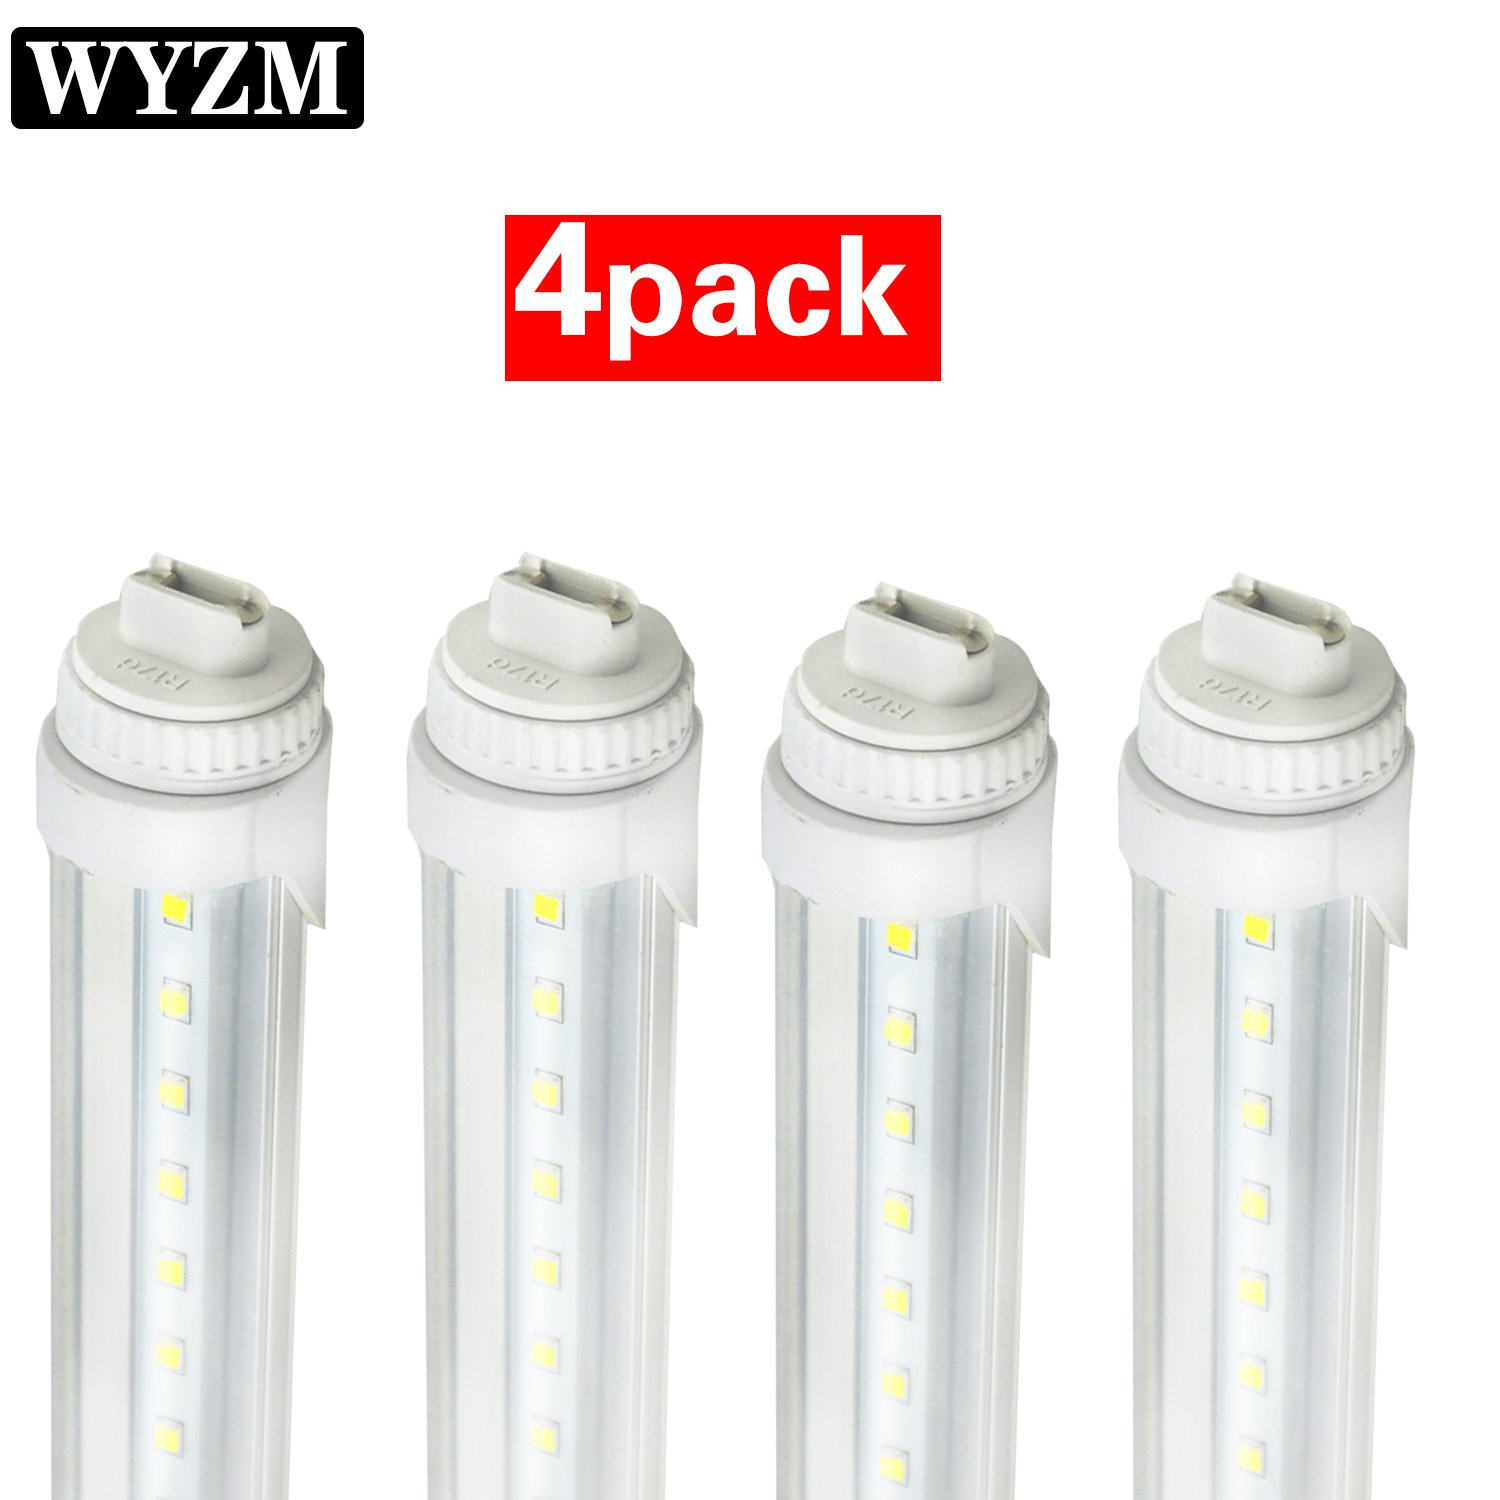 WYZM R17D 4FT 20W F48T12/CW/HO Straight T12 Fluorescent LED Tube Light Bulb for Vending Cooler Freezer Replacement Bulb (4-Pack 5500k)